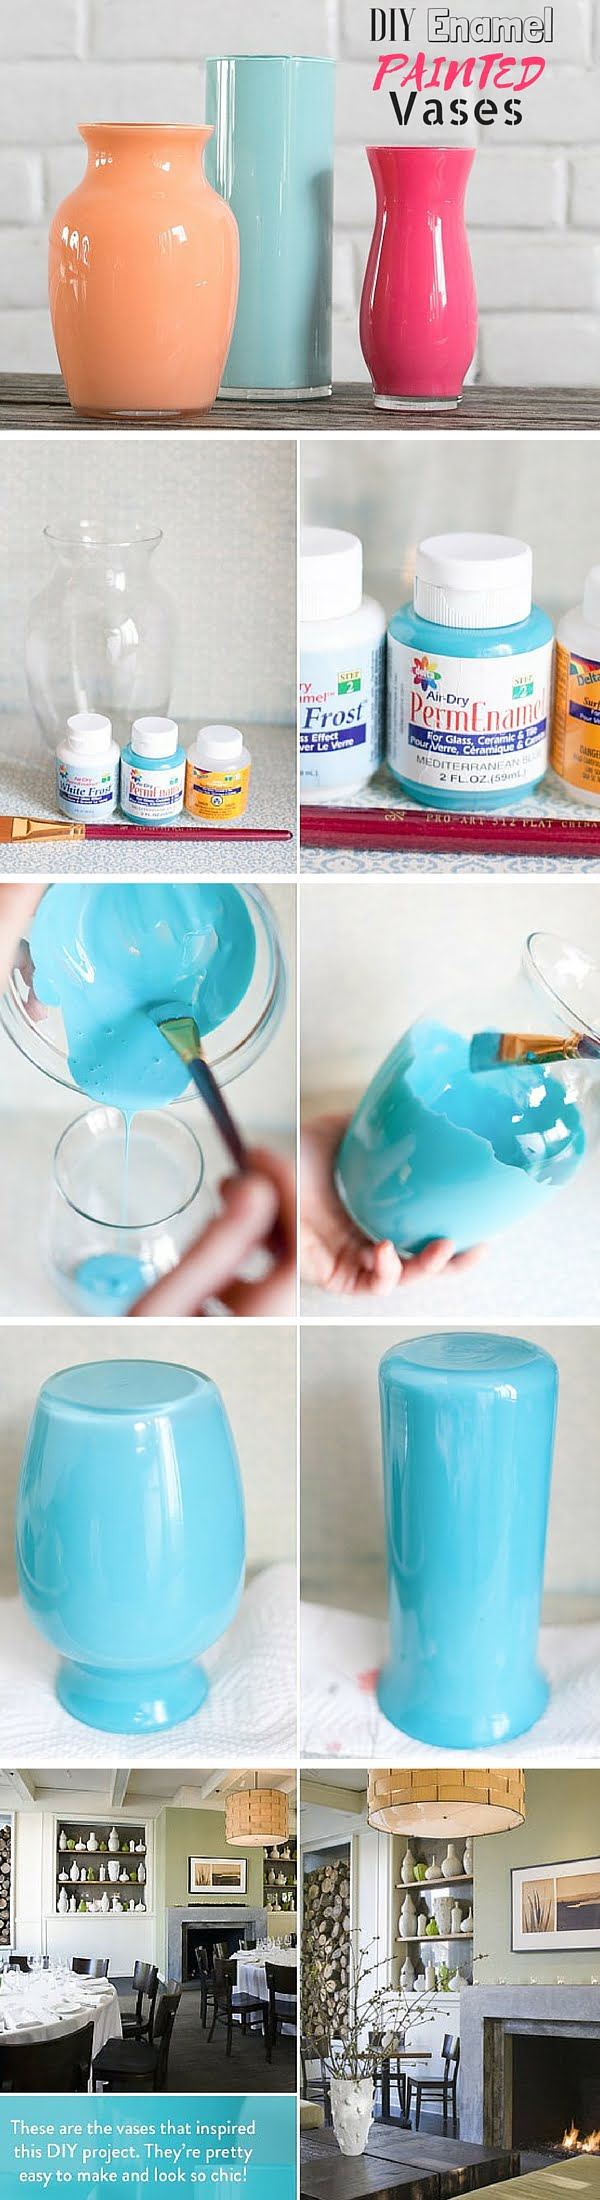 Check out the tutorial:  Enamel Painted Vases